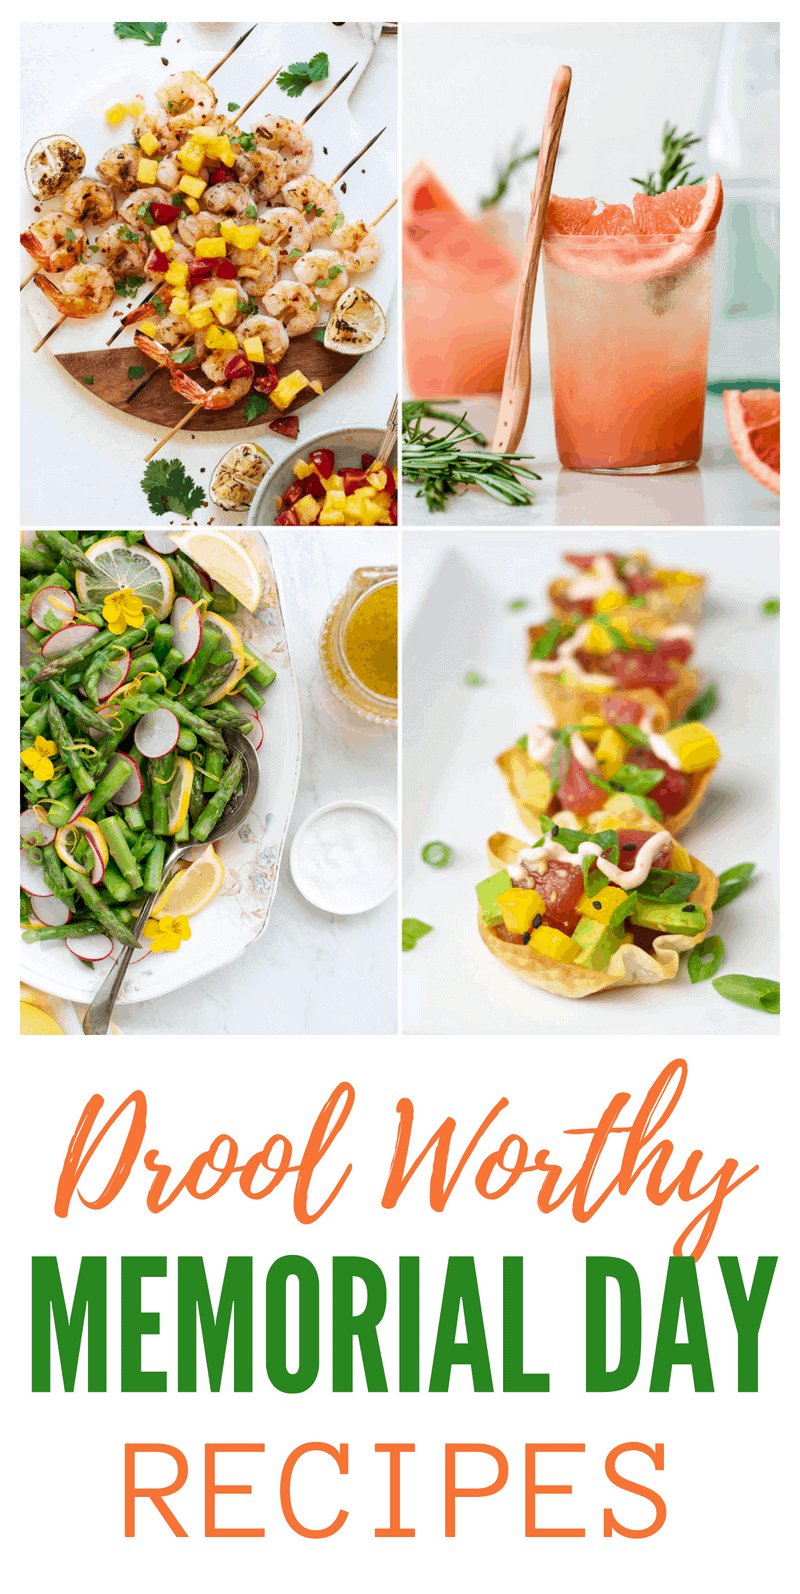 Are you ready to kick off the summer season? We've got oodles of drool-worthy Memorial Day recipes that will make your long weekend a blast! This roundup has it all! Healthy, indulgent, omnivore, vegan...there's something for everyone on this menu. #memorialdayrecipes #bbq #cookout #memorialday #summerrecipes #barbecue #grilling